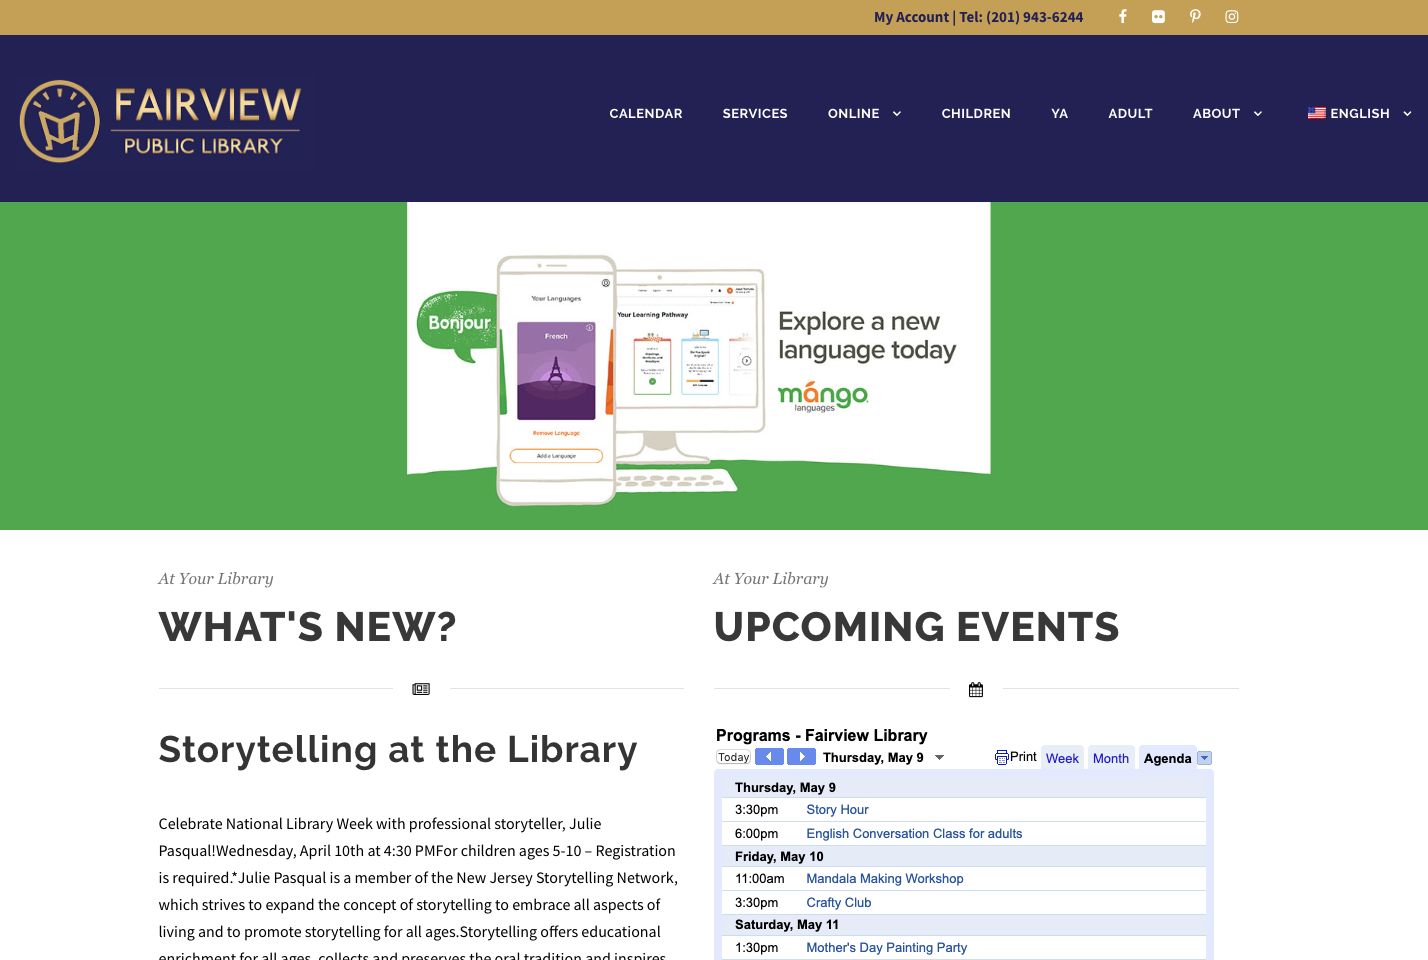 Screenshot depicting the homepage of the Fairview Public Library website.